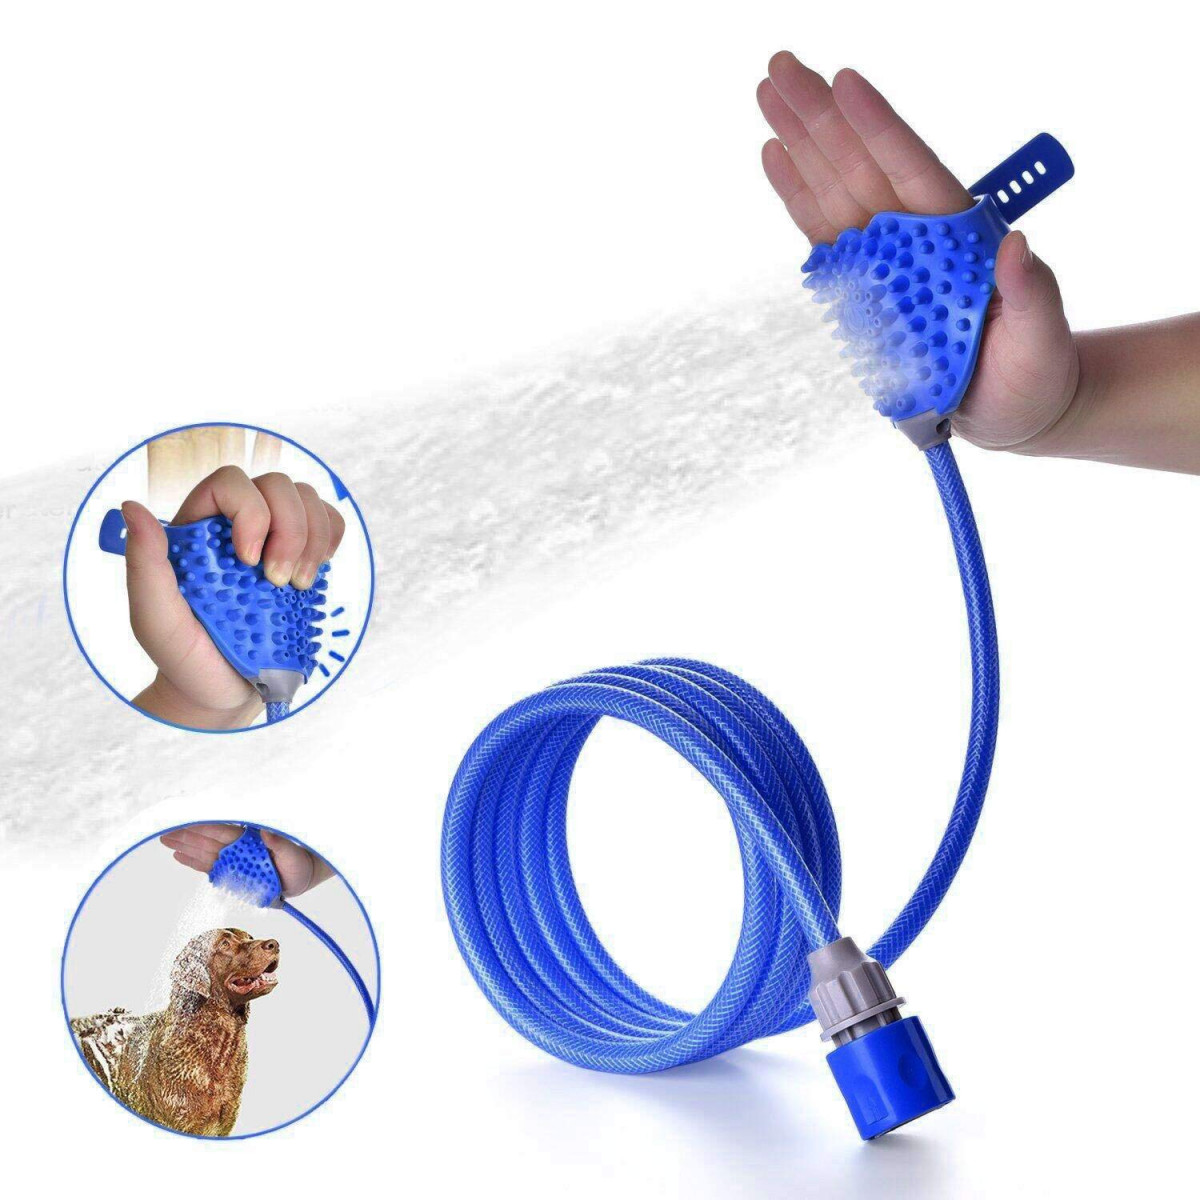 Siksin Pet Bathing Tool Pet Shower Sprayer Massage Scrubber In One For Dog Cat Adjustable Handheld Grooming Shower Head Brush For Bath Tub And